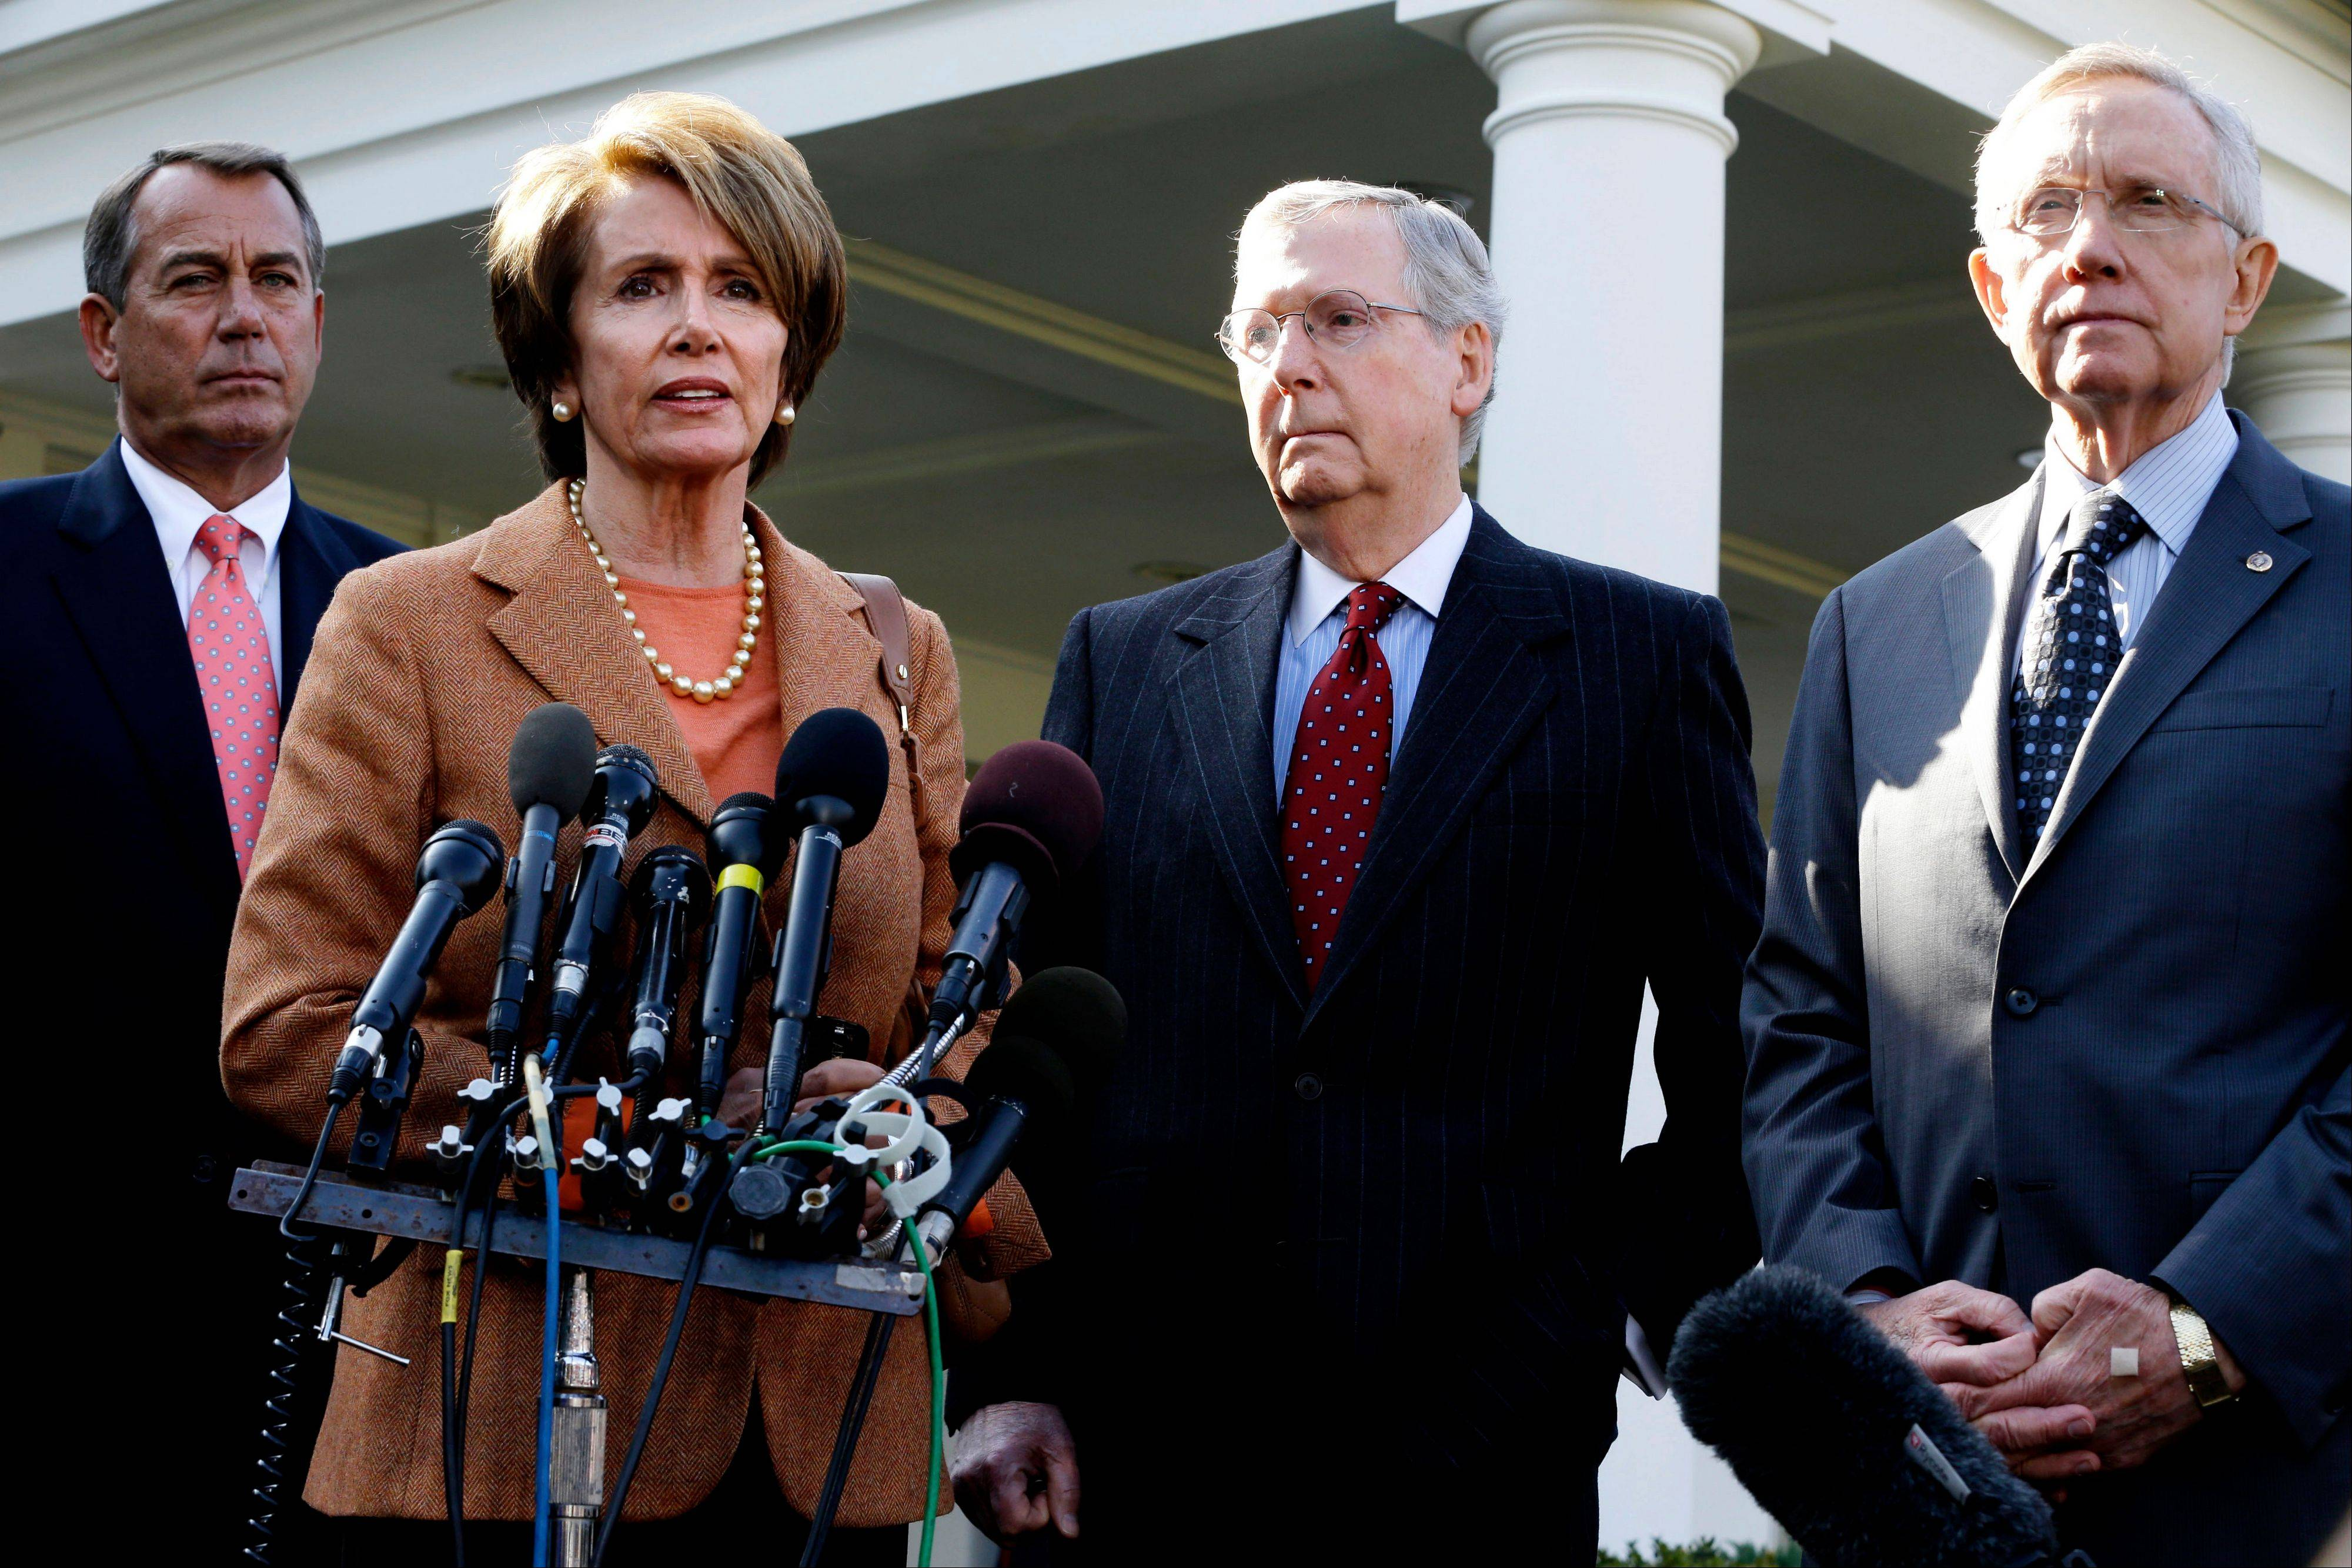 House Minority Leader Nancy Pelosi, second from left, House Speaker John Boehner, Senate Minority Leader Mitch McConnell and Senate Majority Leader Harry Reid are seen last November. Congress reconvenes this week.